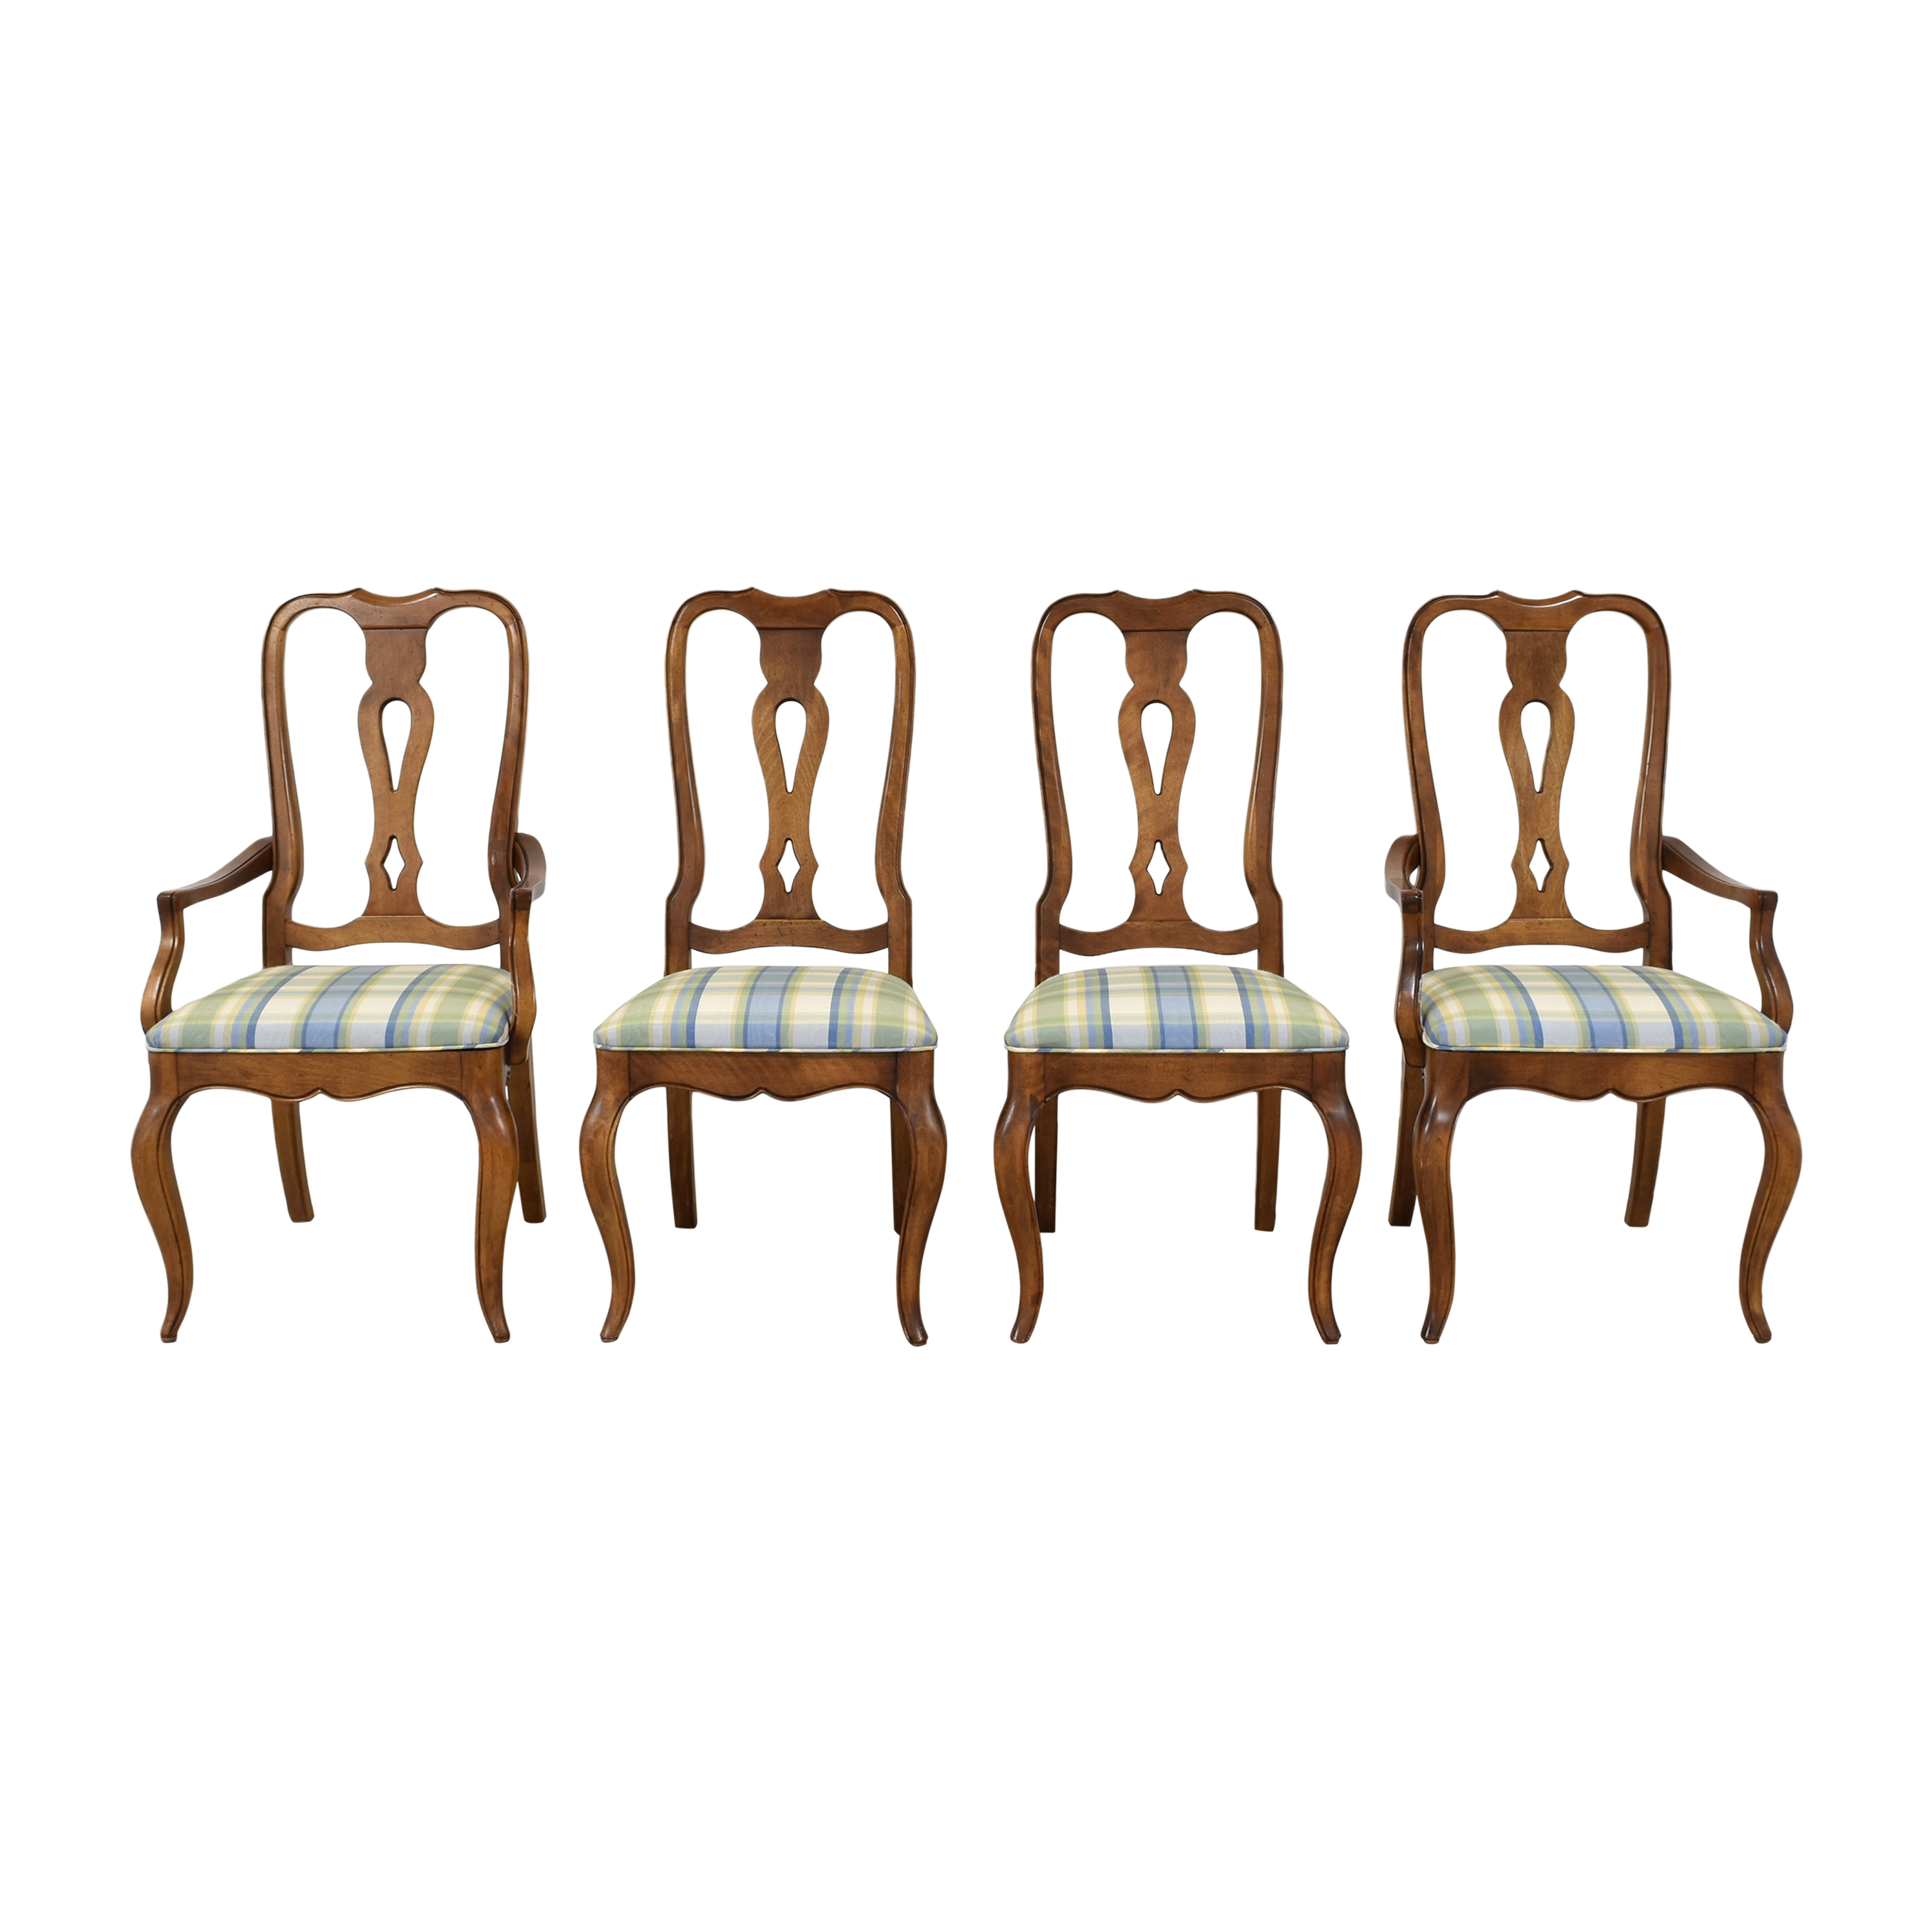 Ethan Allen Ethan Allen French Country Dining Chairs Chairs